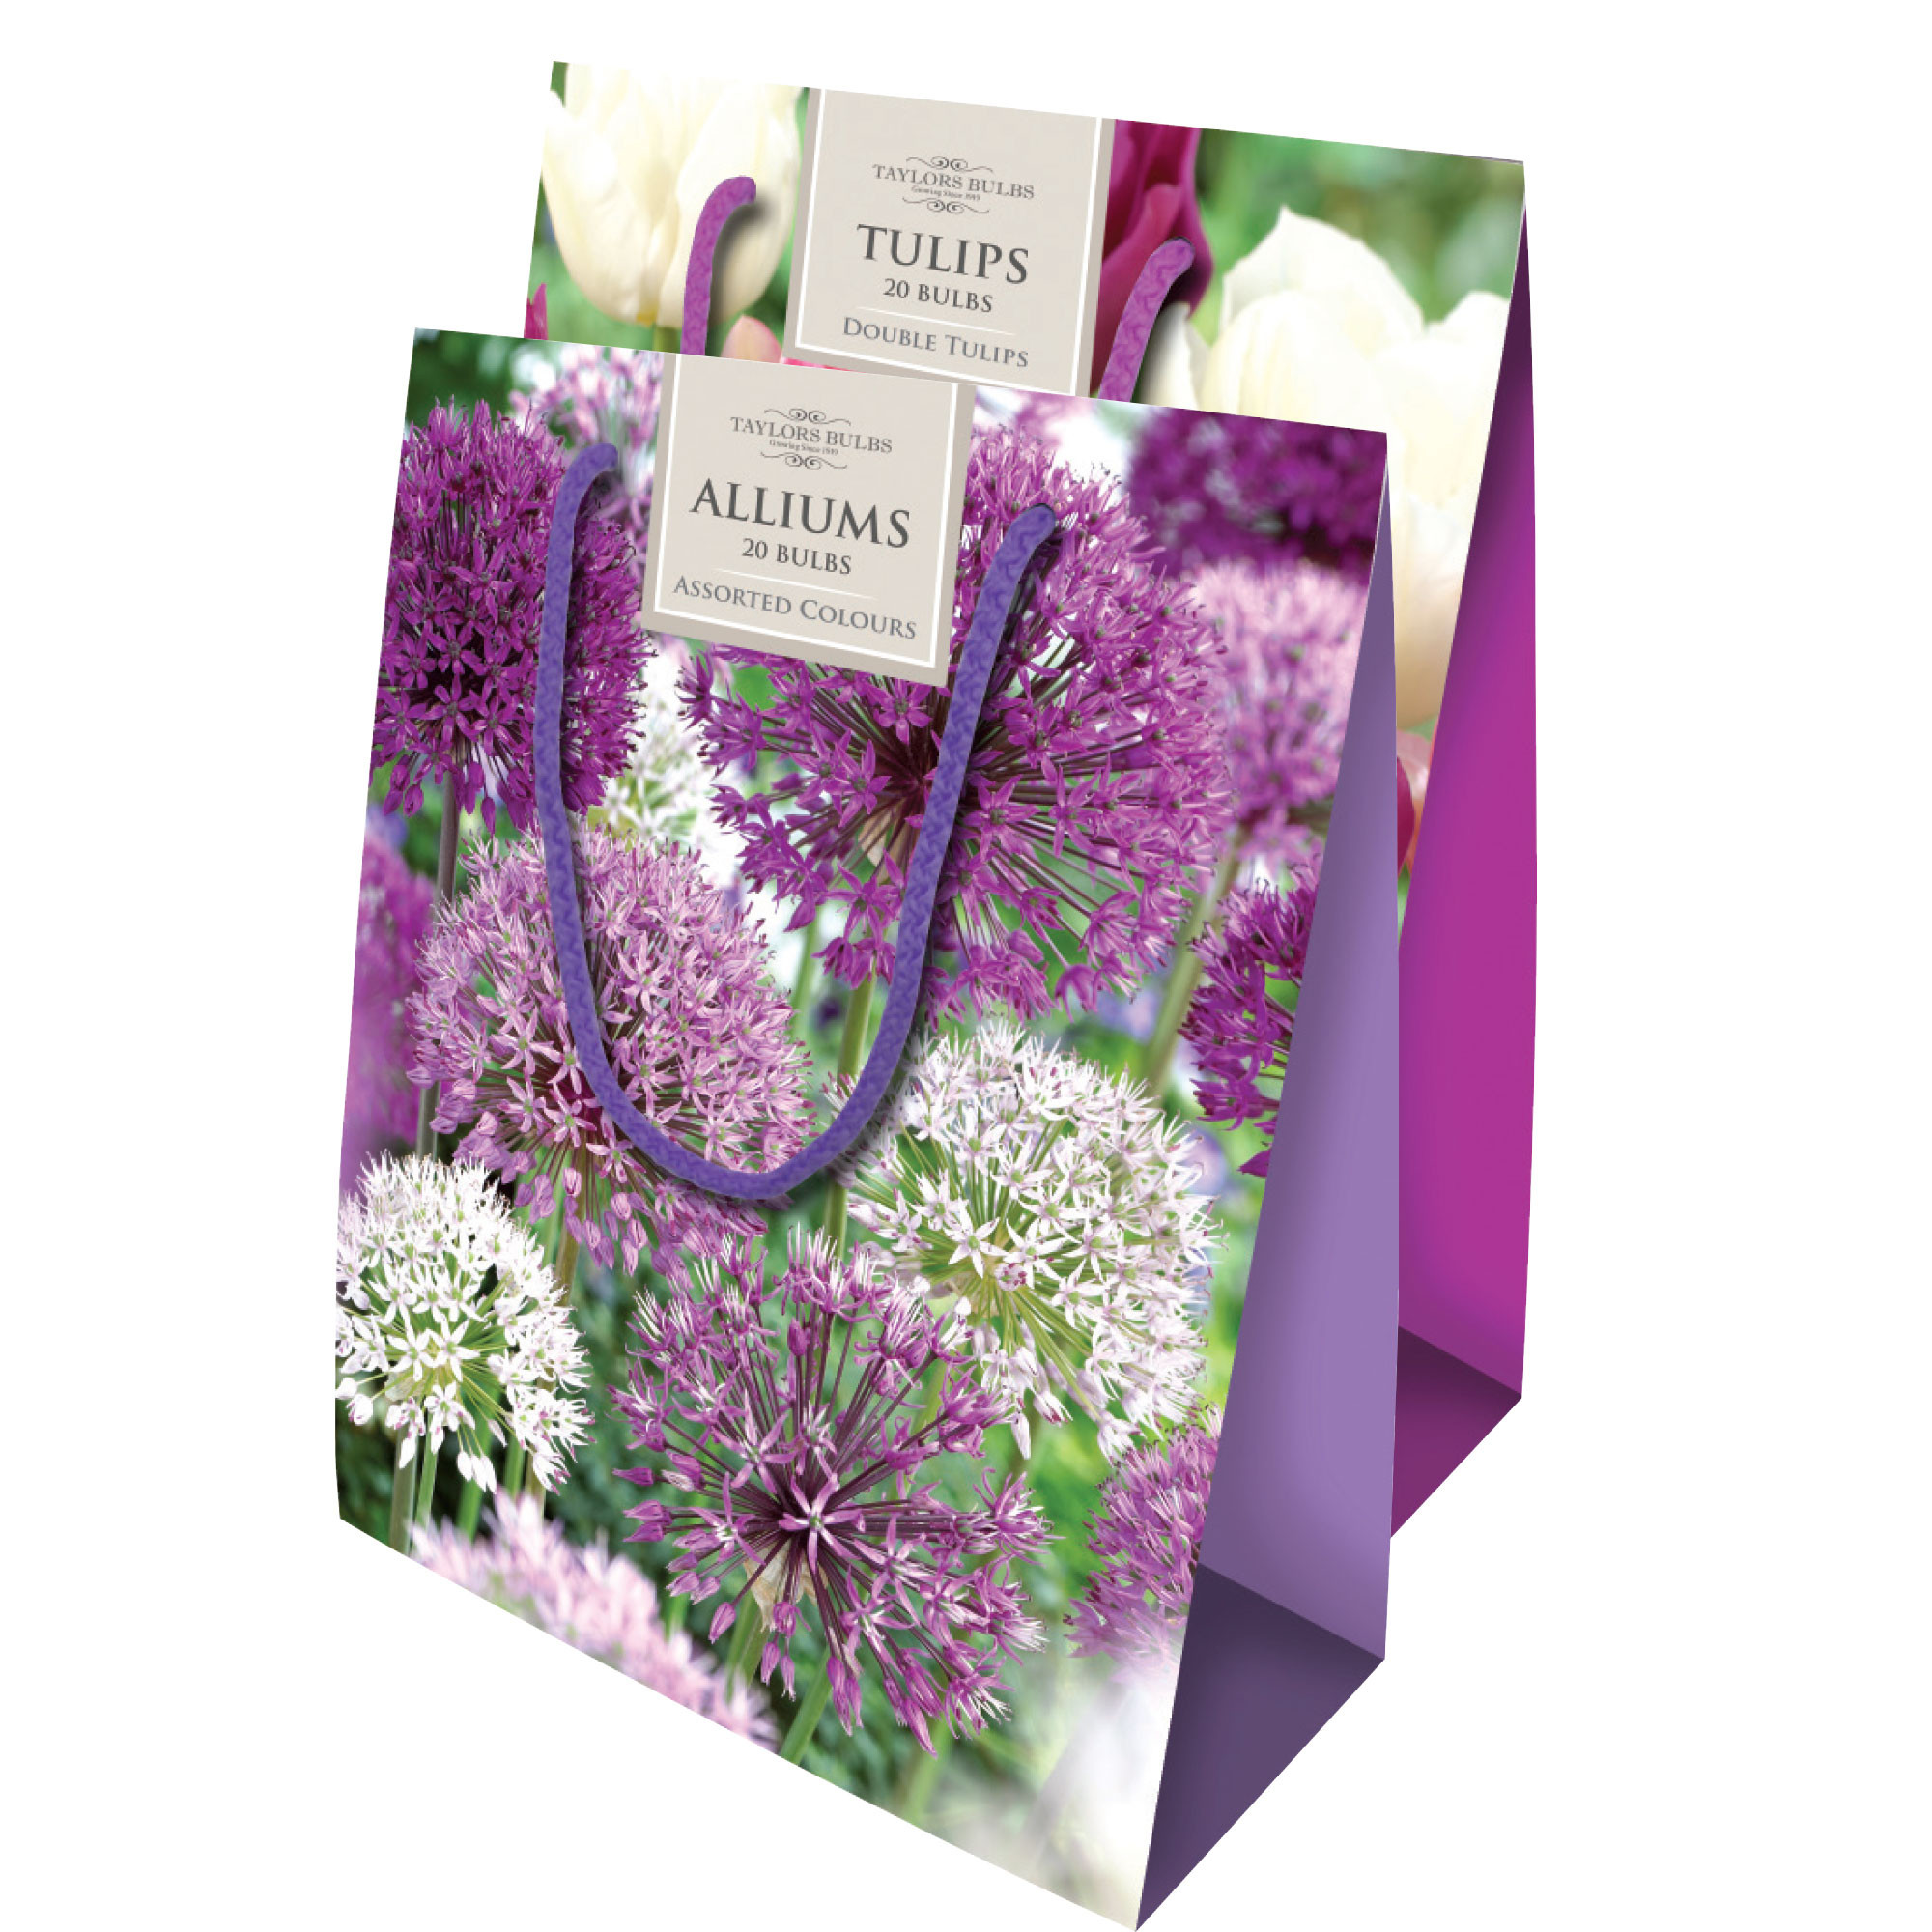 19.99 flowers with free vase of planters garden centre planters garden centre in allium tulip gift bags